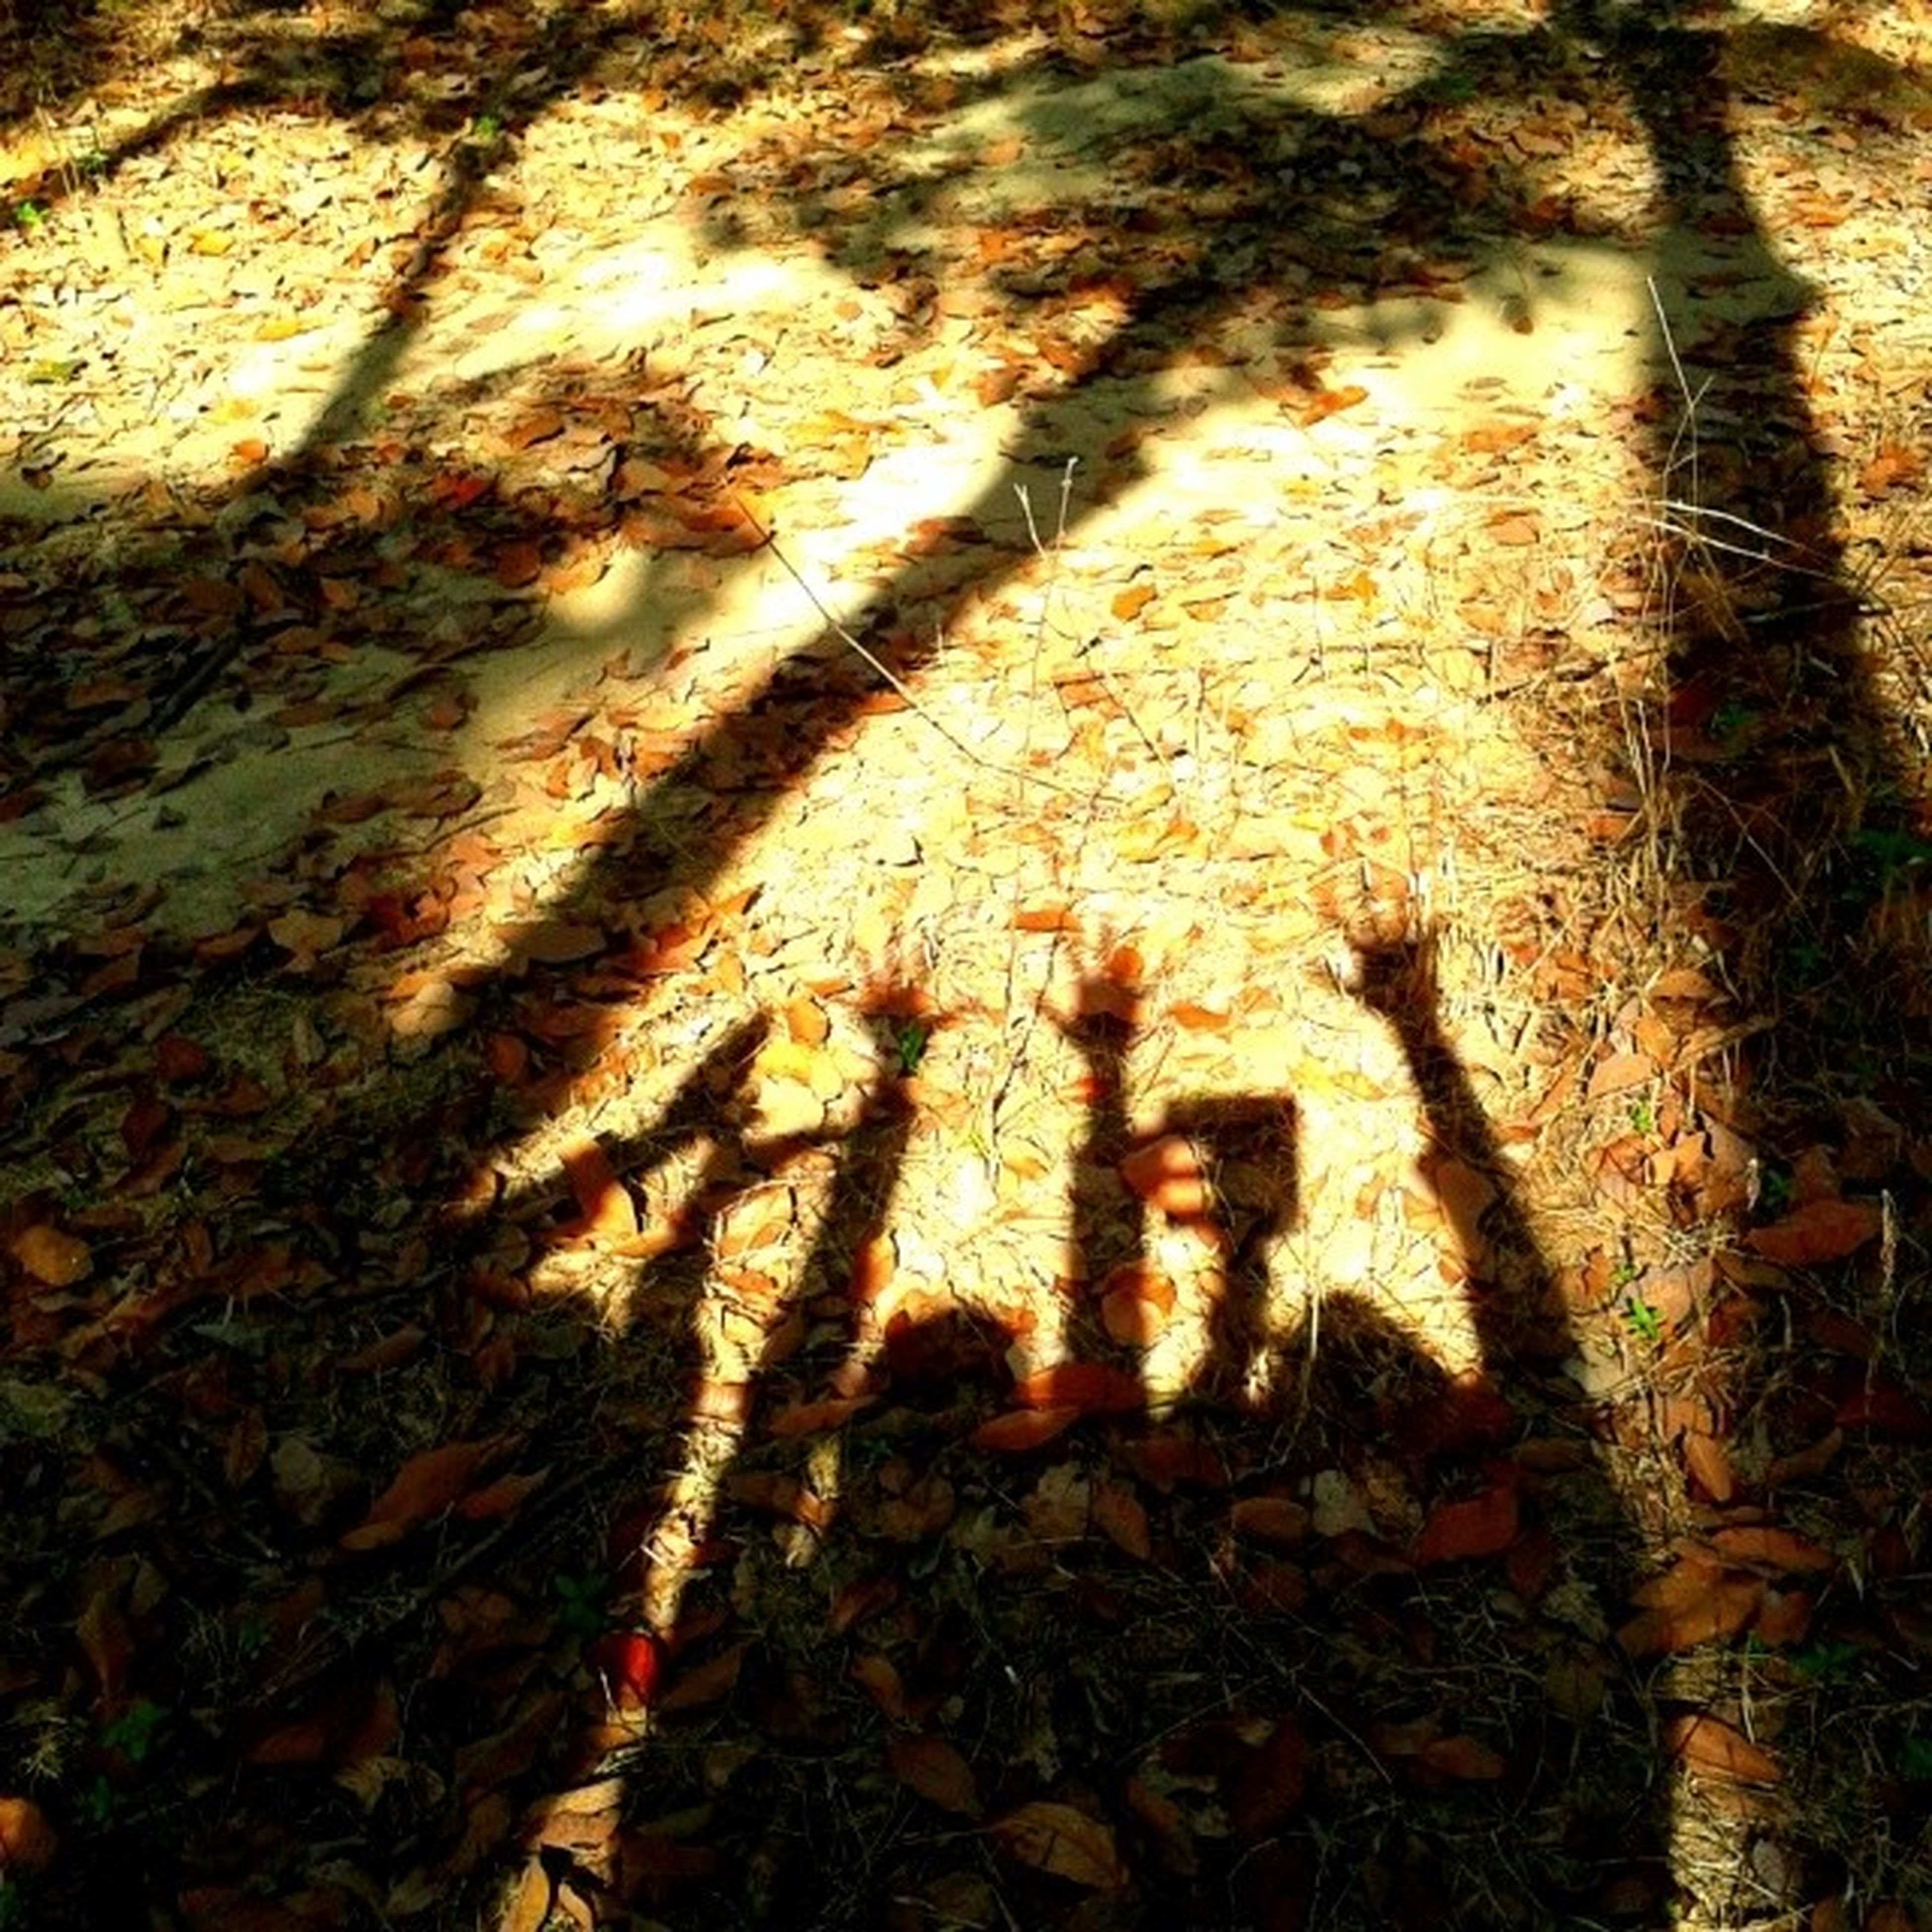 high angle view, leaf, sunlight, shadow, outdoors, growth, plant, nature, orange color, field, day, sunset, no people, focus on shadow, close-up, dry, autumn, wall - building feature